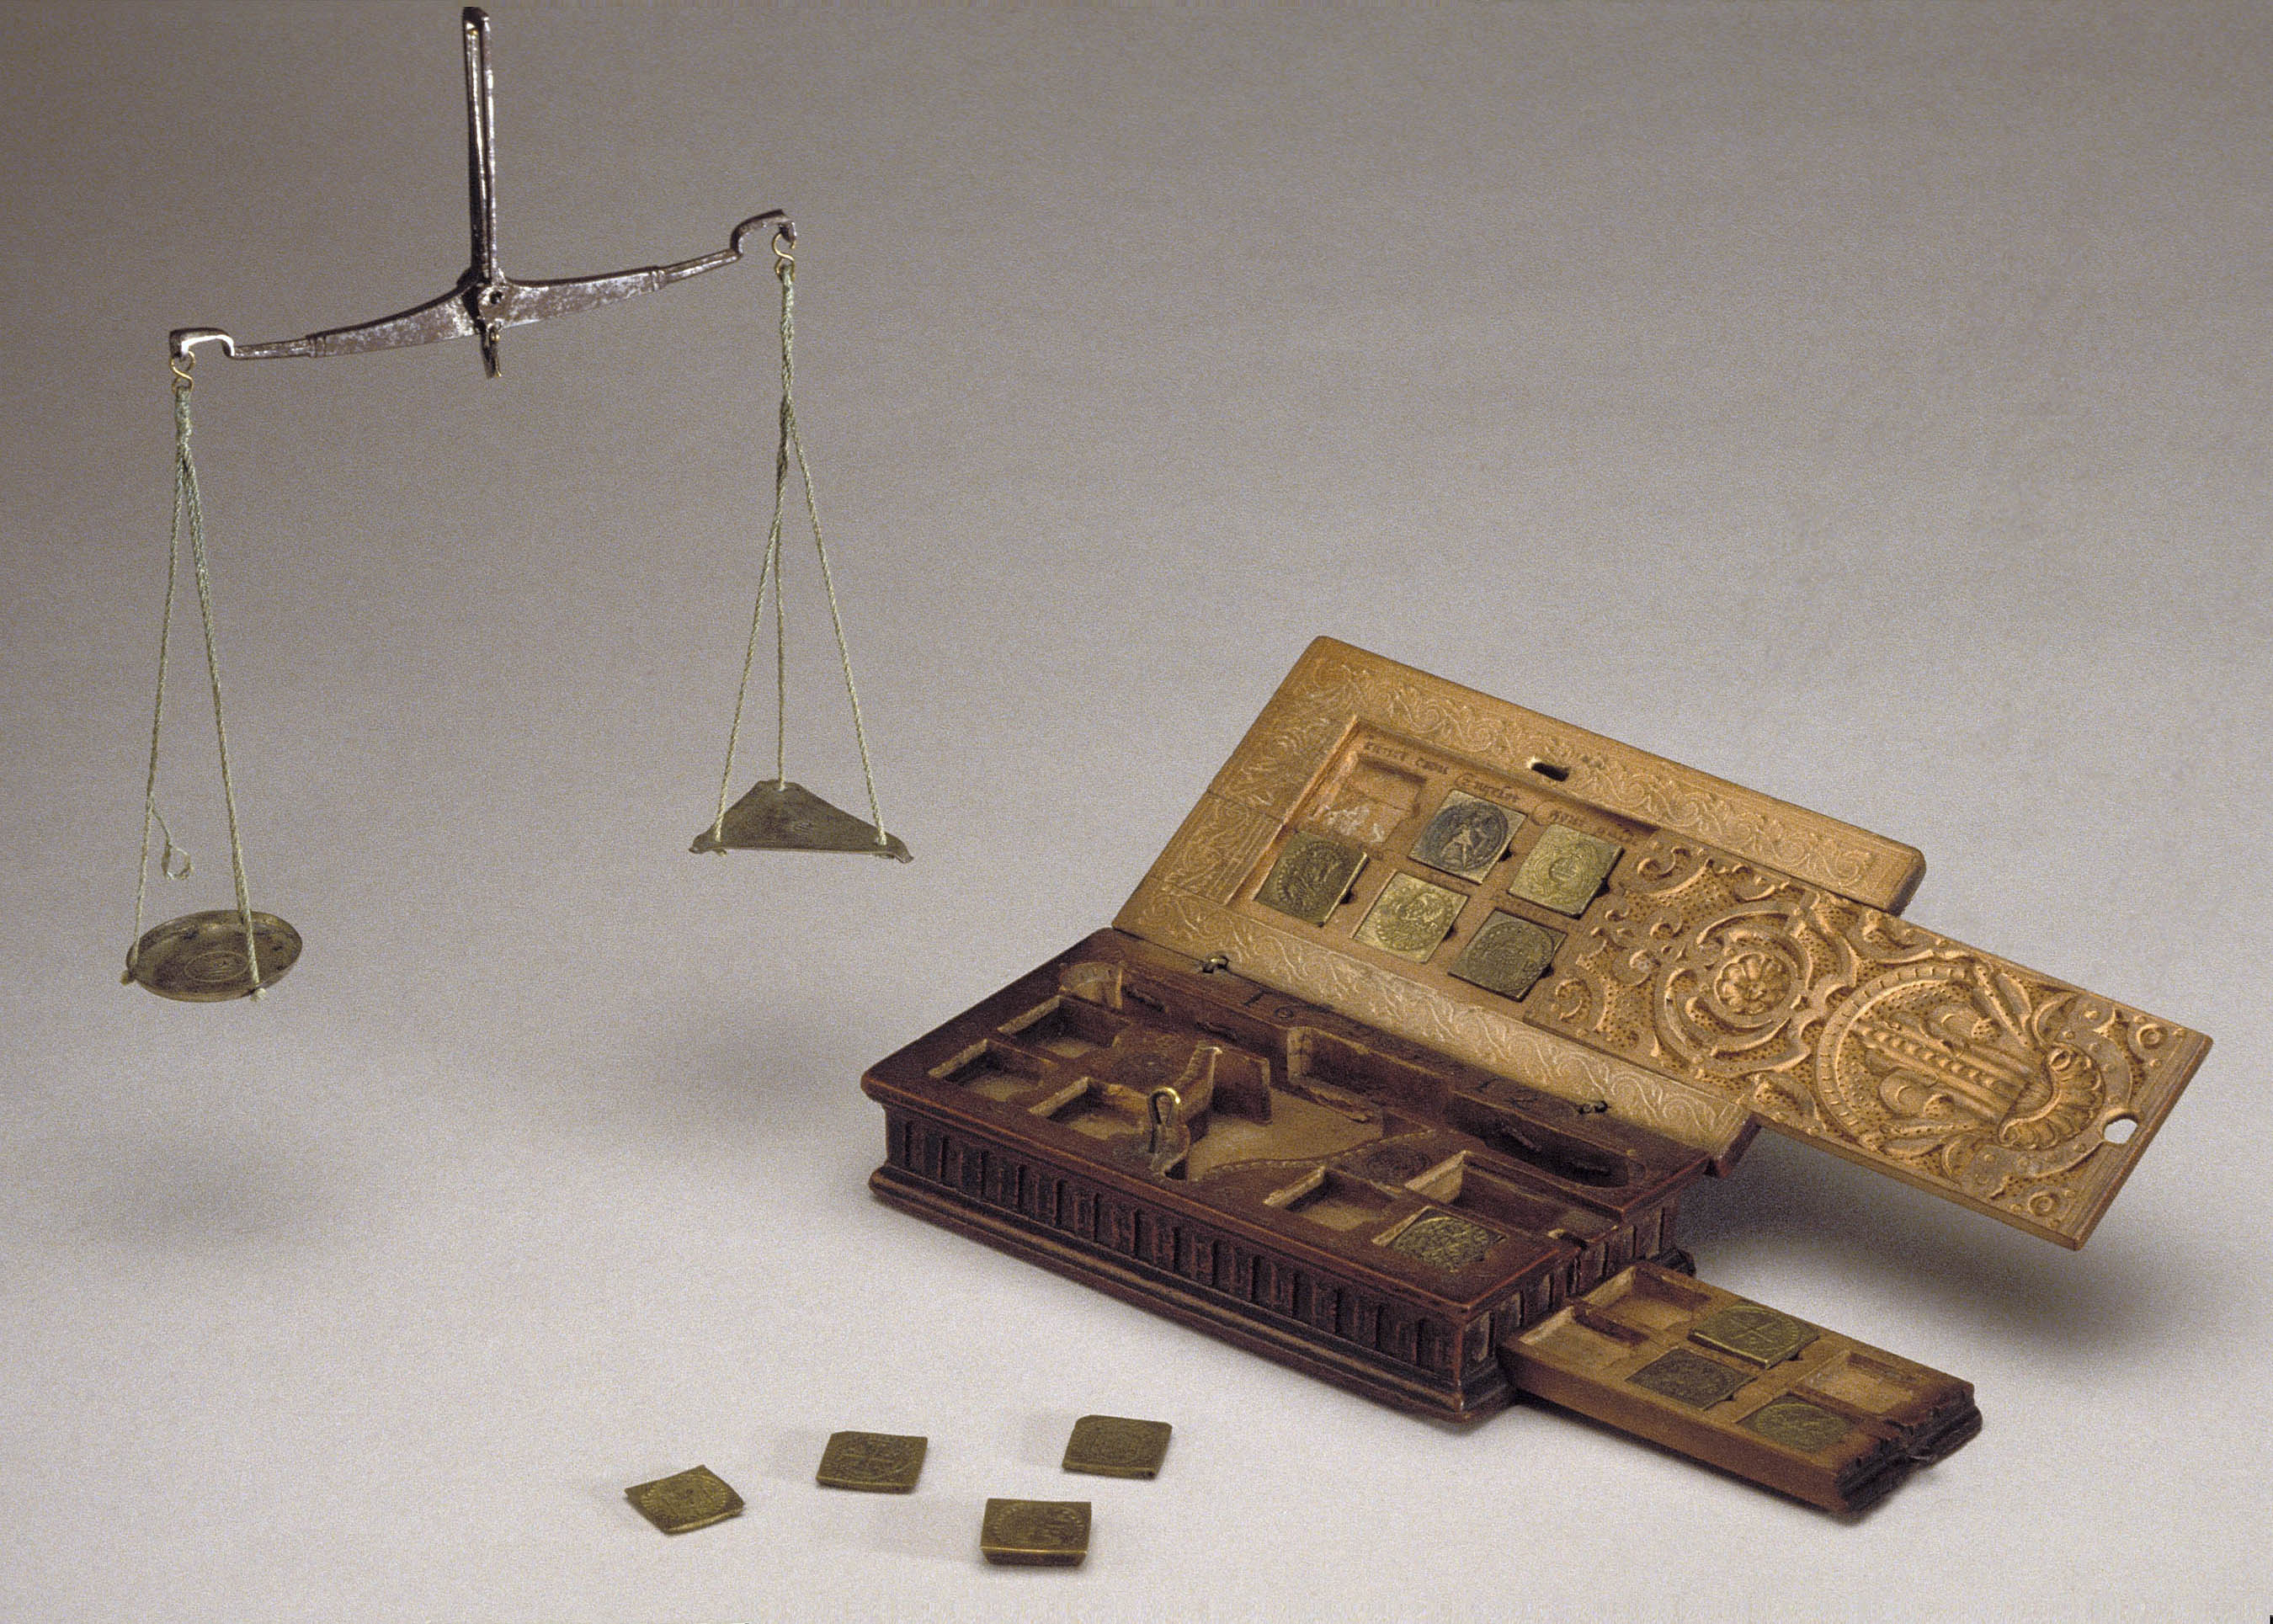 Unidentified Artist (Cologne) and Guilliam de Neve, Box of Coin Weights and Scales, 1612, wood, brass, iron, silvered copper, silk Detroit Instiute of Arts